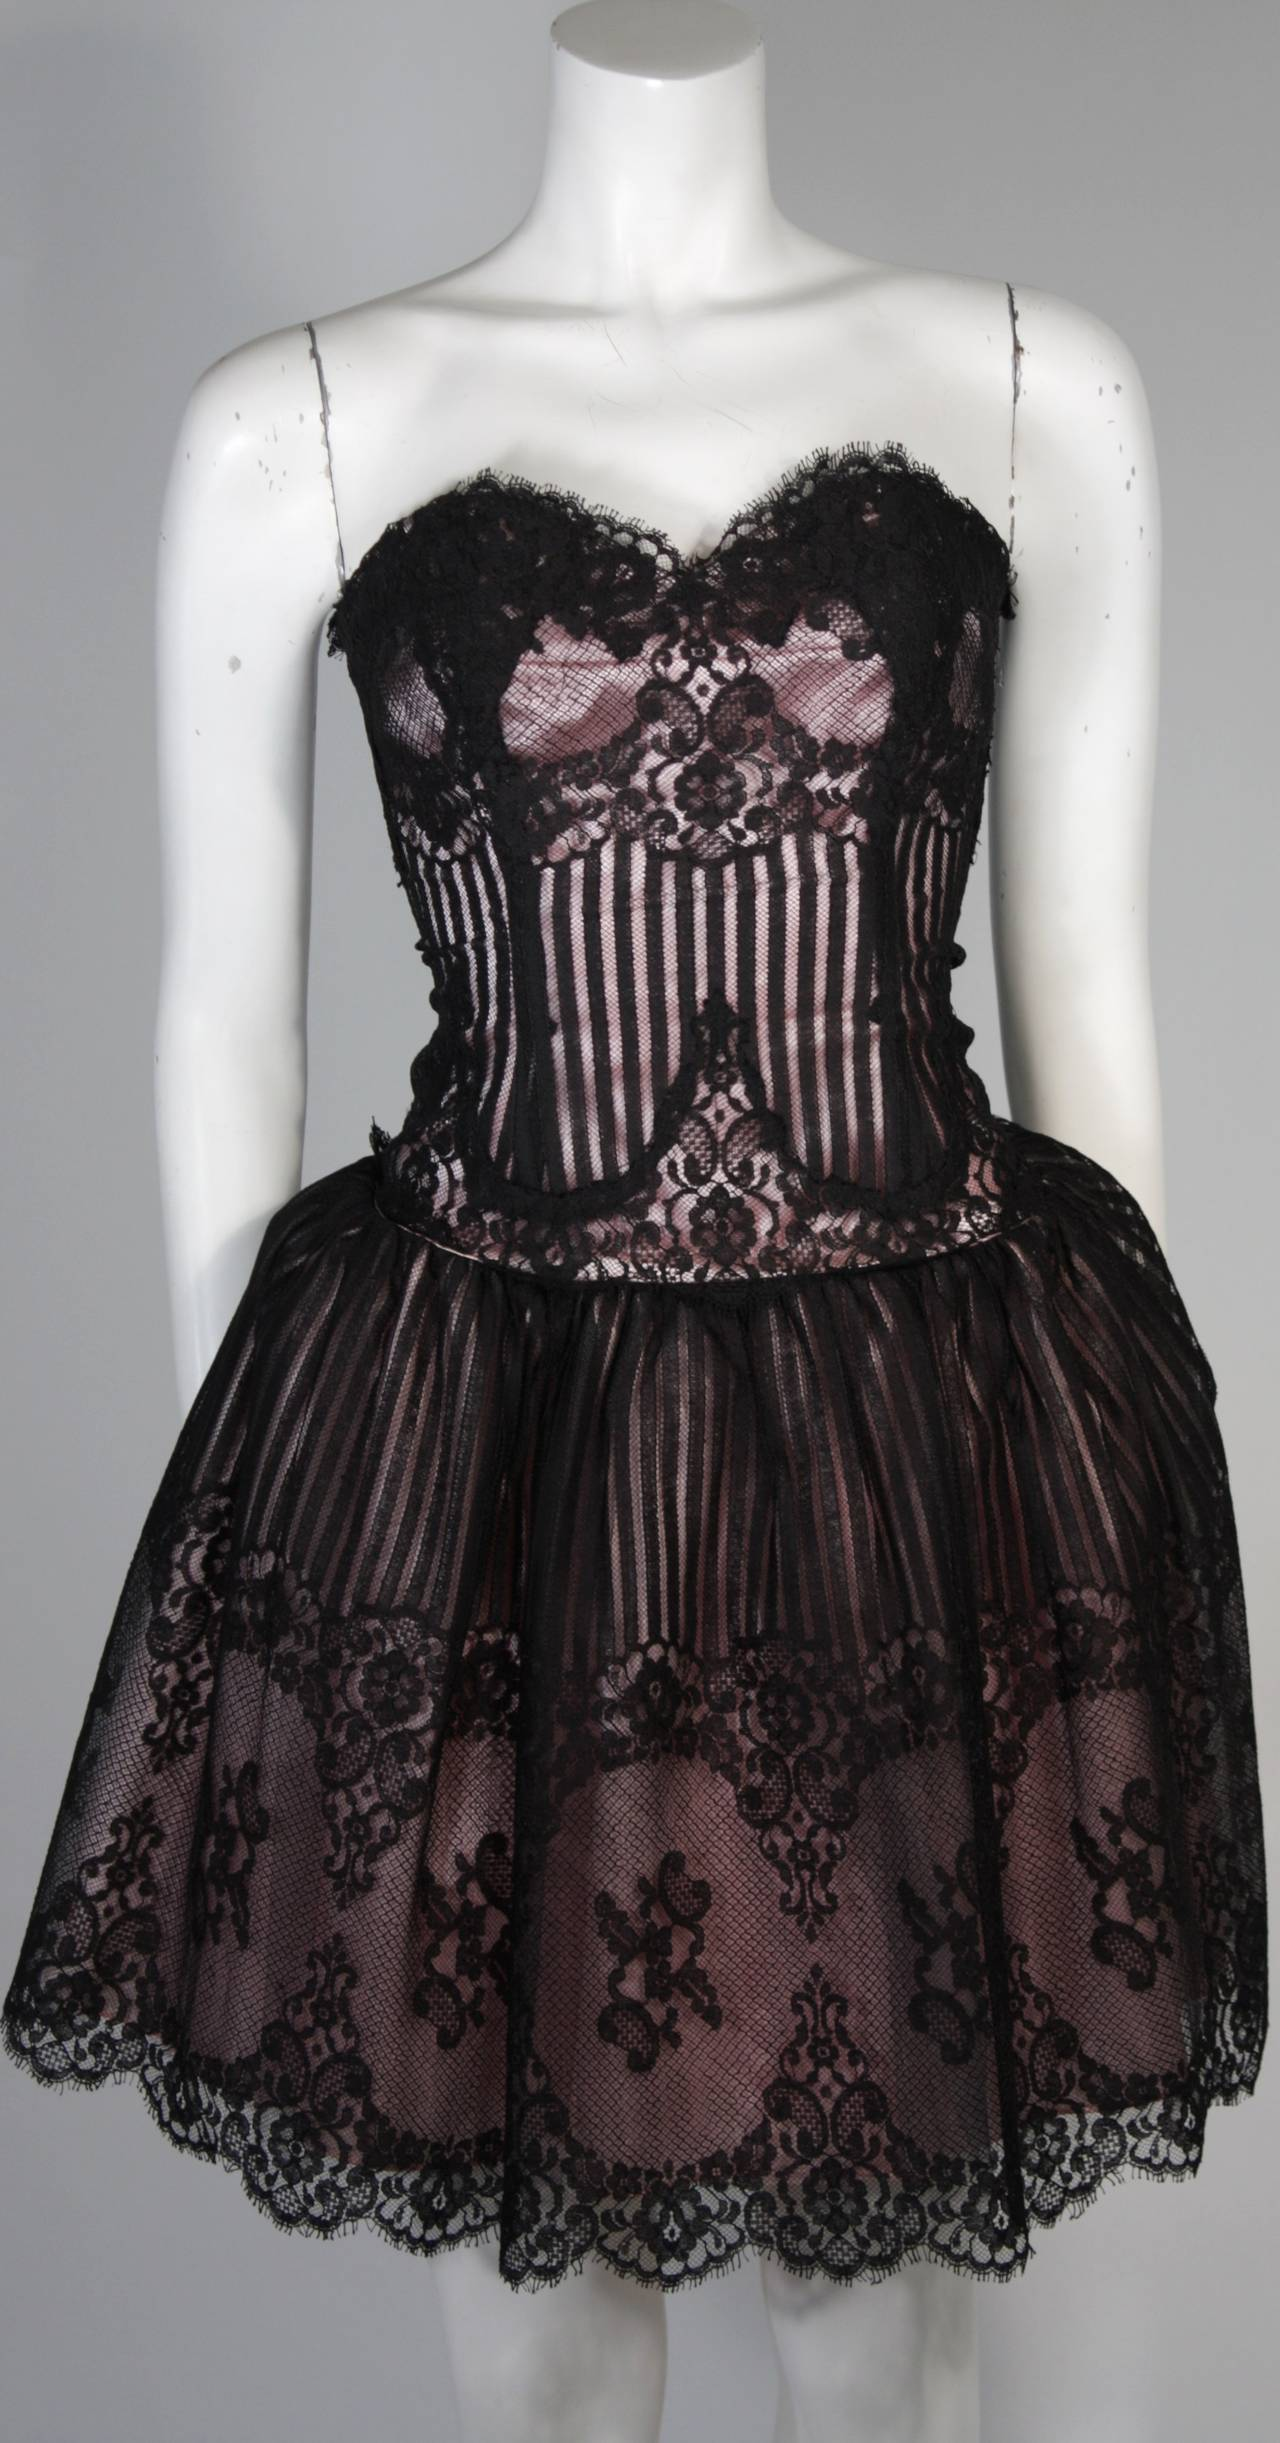 Victor Costa Strapless Black Lace Cocktail Dress with Pink Satin Size 40 In Excellent Condition For Sale In Los Angeles, CA